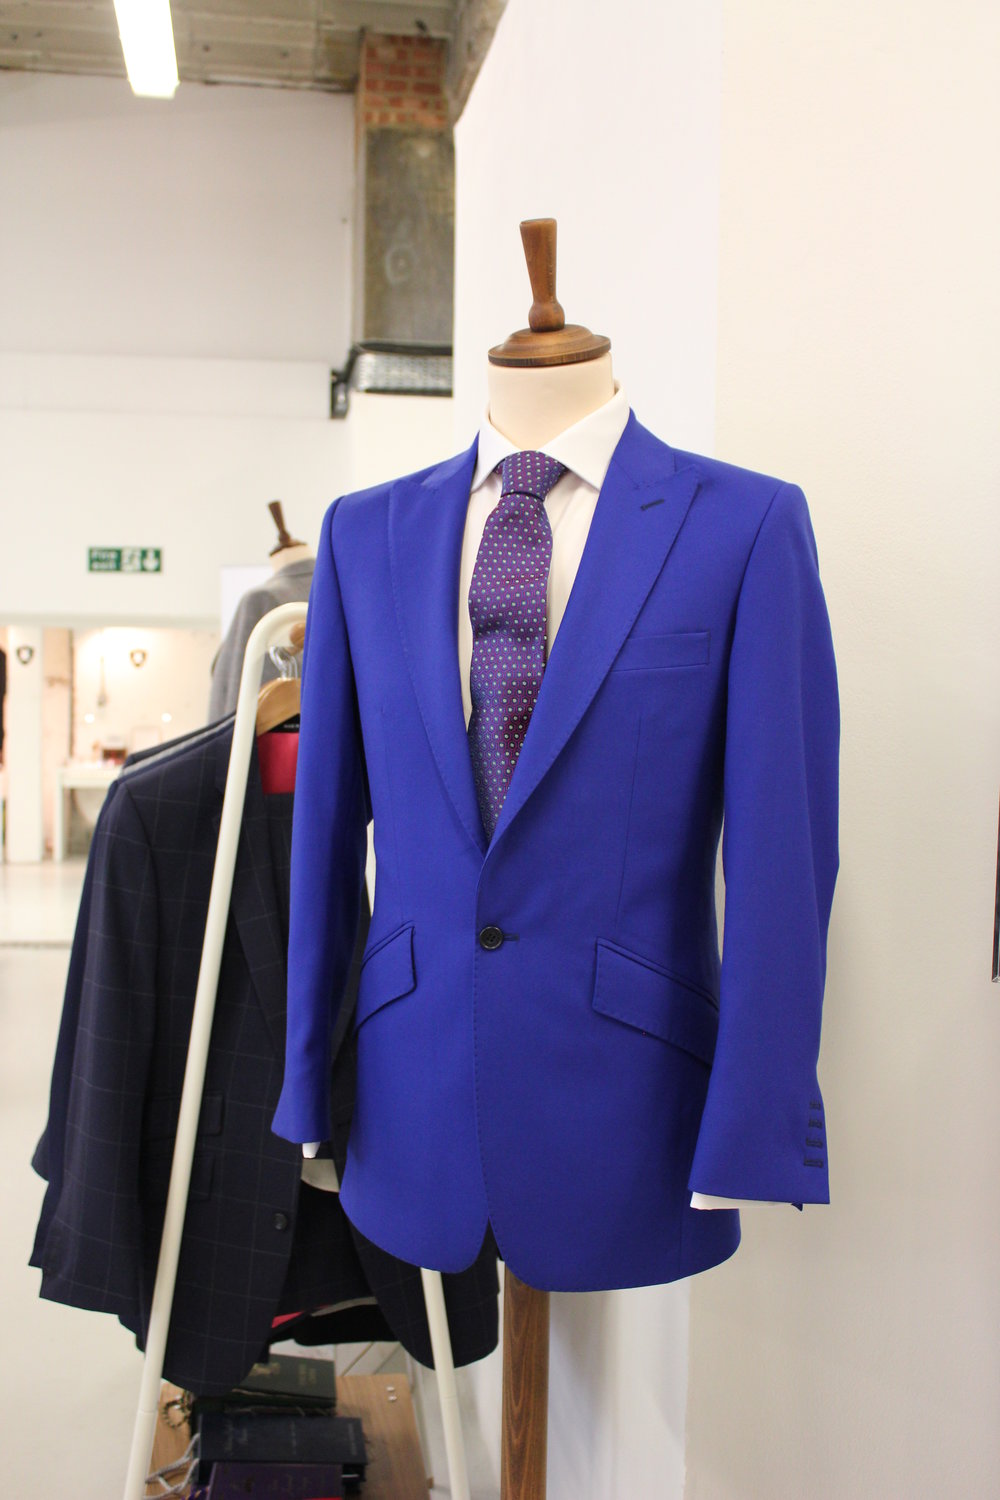 blue-british-all-uk-made-bespoke-tailor-harrisons-wool-bright-suit-augustus-hare-tie-menswear.JPG